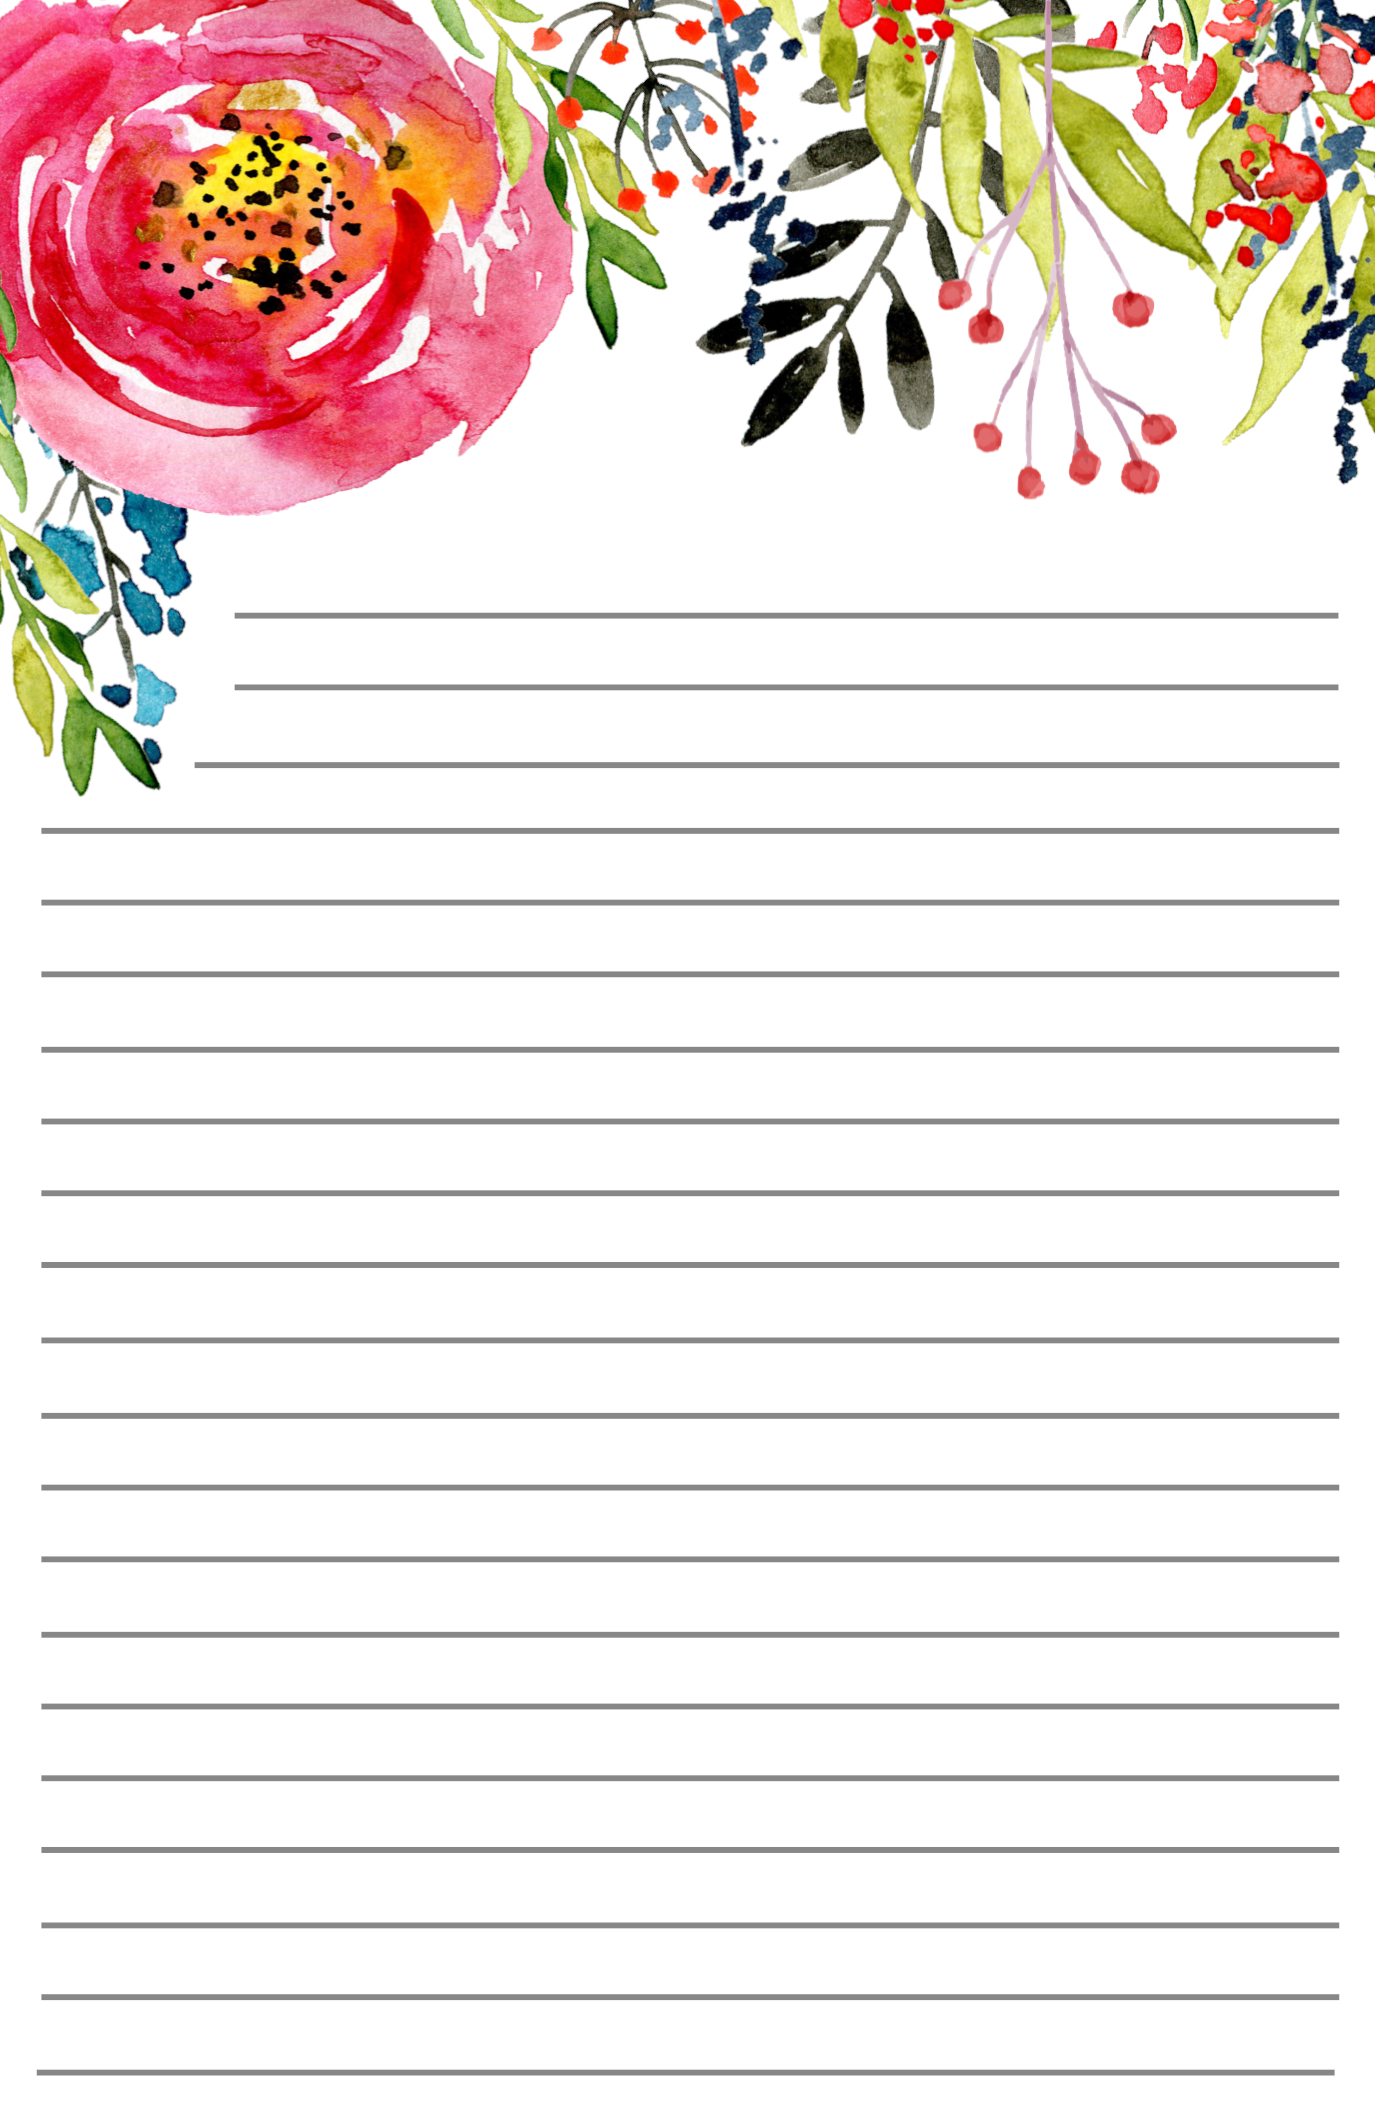 photograph regarding Free Printable Stationery Paper identified as Cost-free Printable Floral Stationery - Paper Path Layout